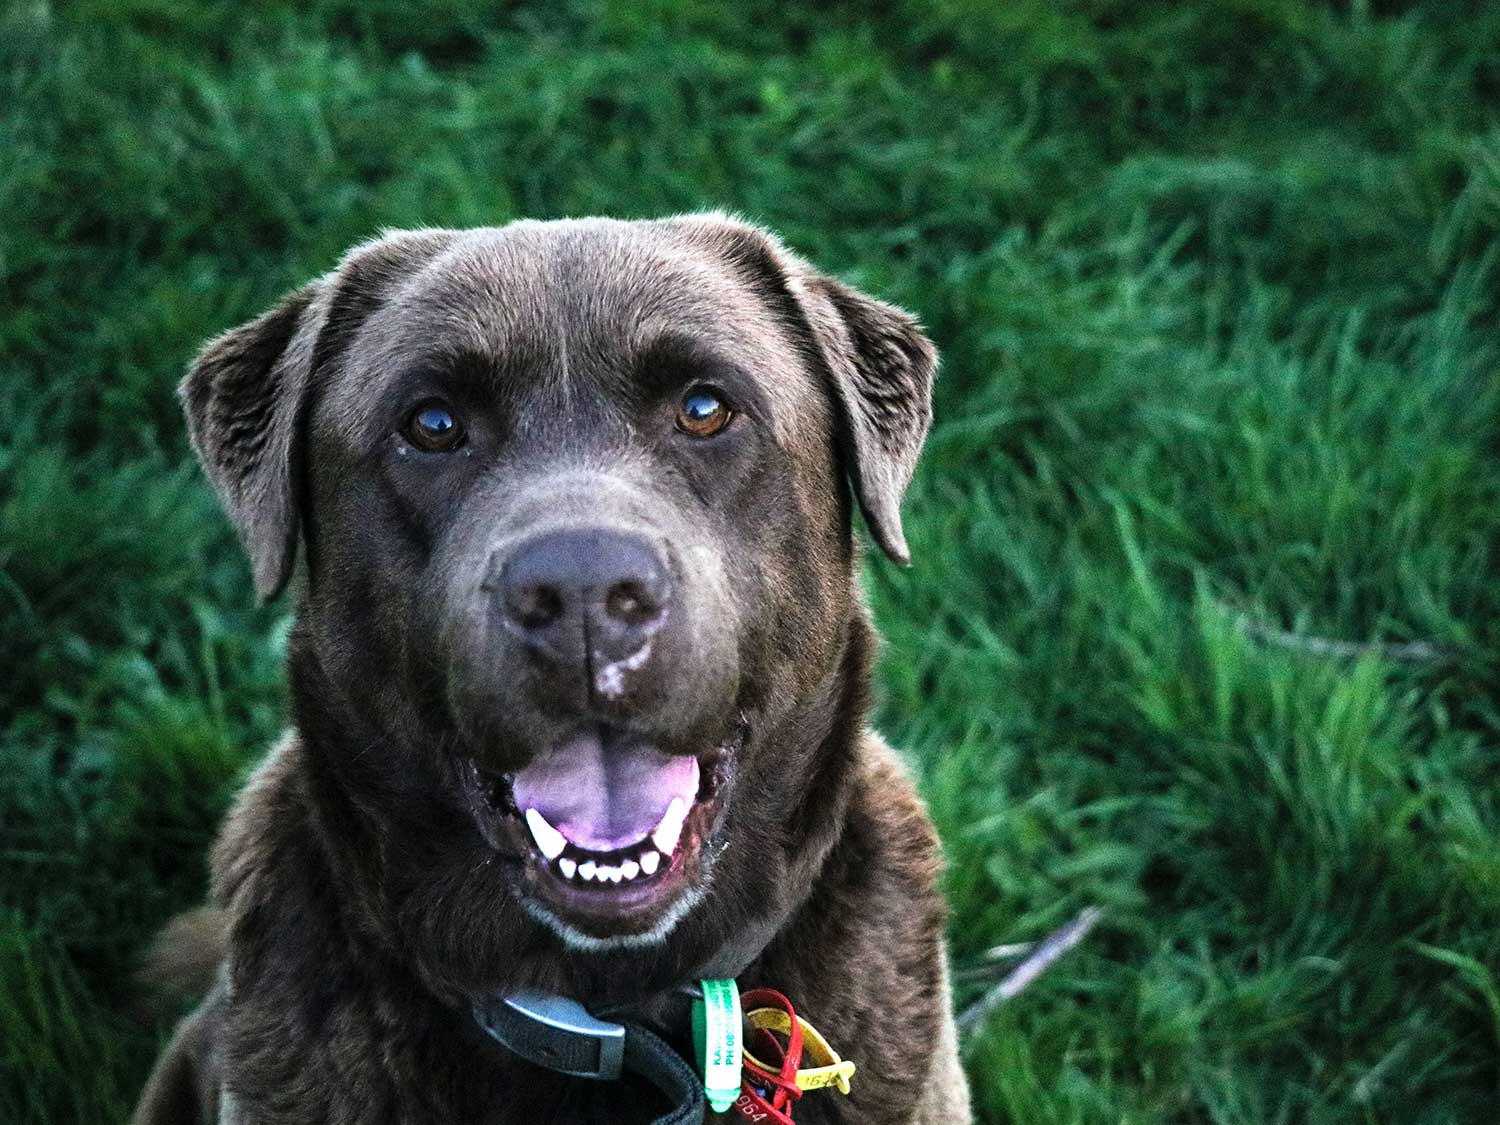 Dog with clean teeth sitting in grass.